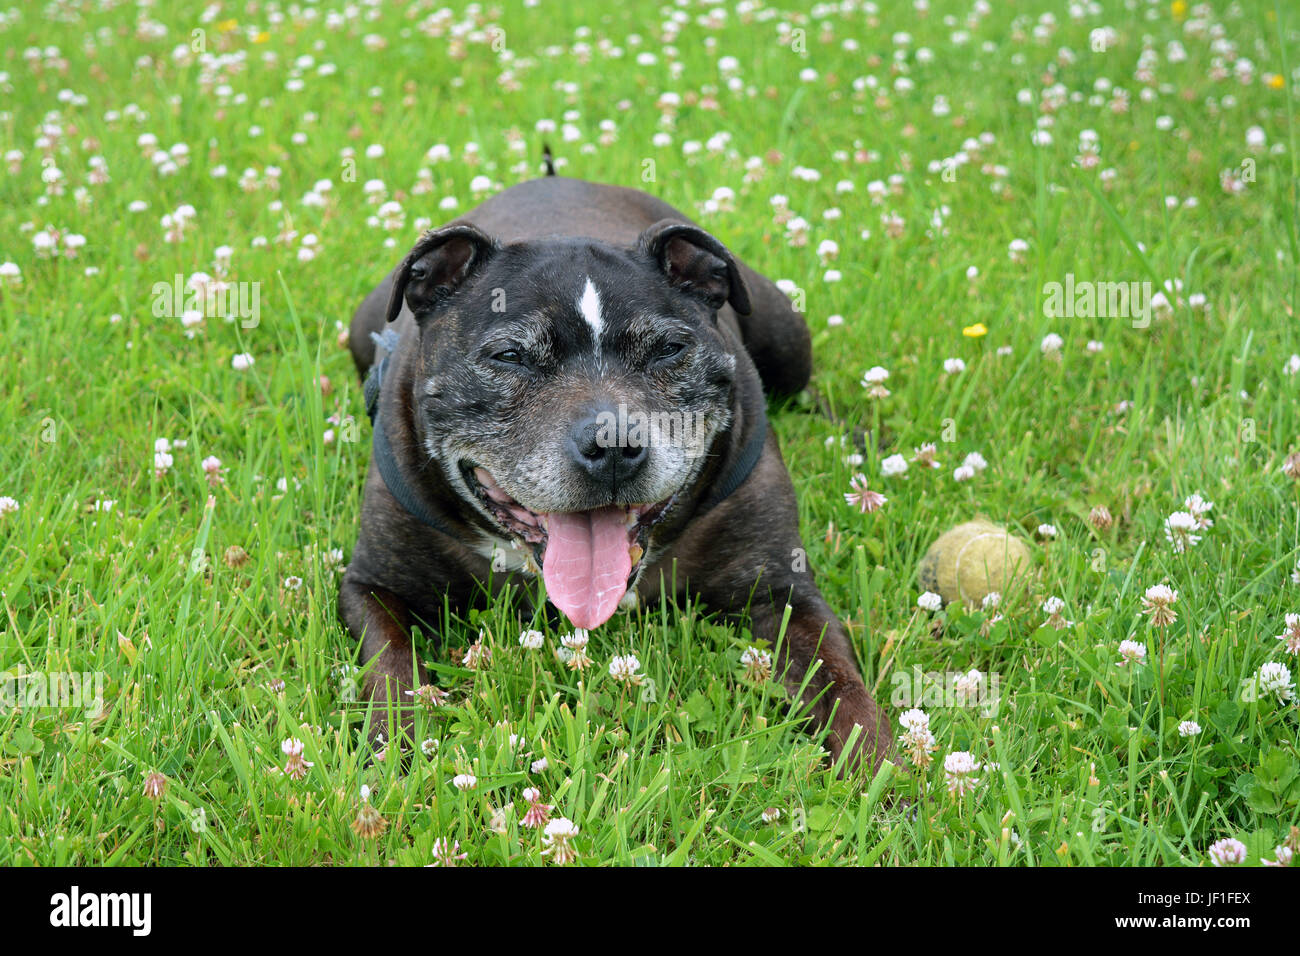 A Tired Staffordshire Bull Terrier After Running Around In The Fields - Stock Image